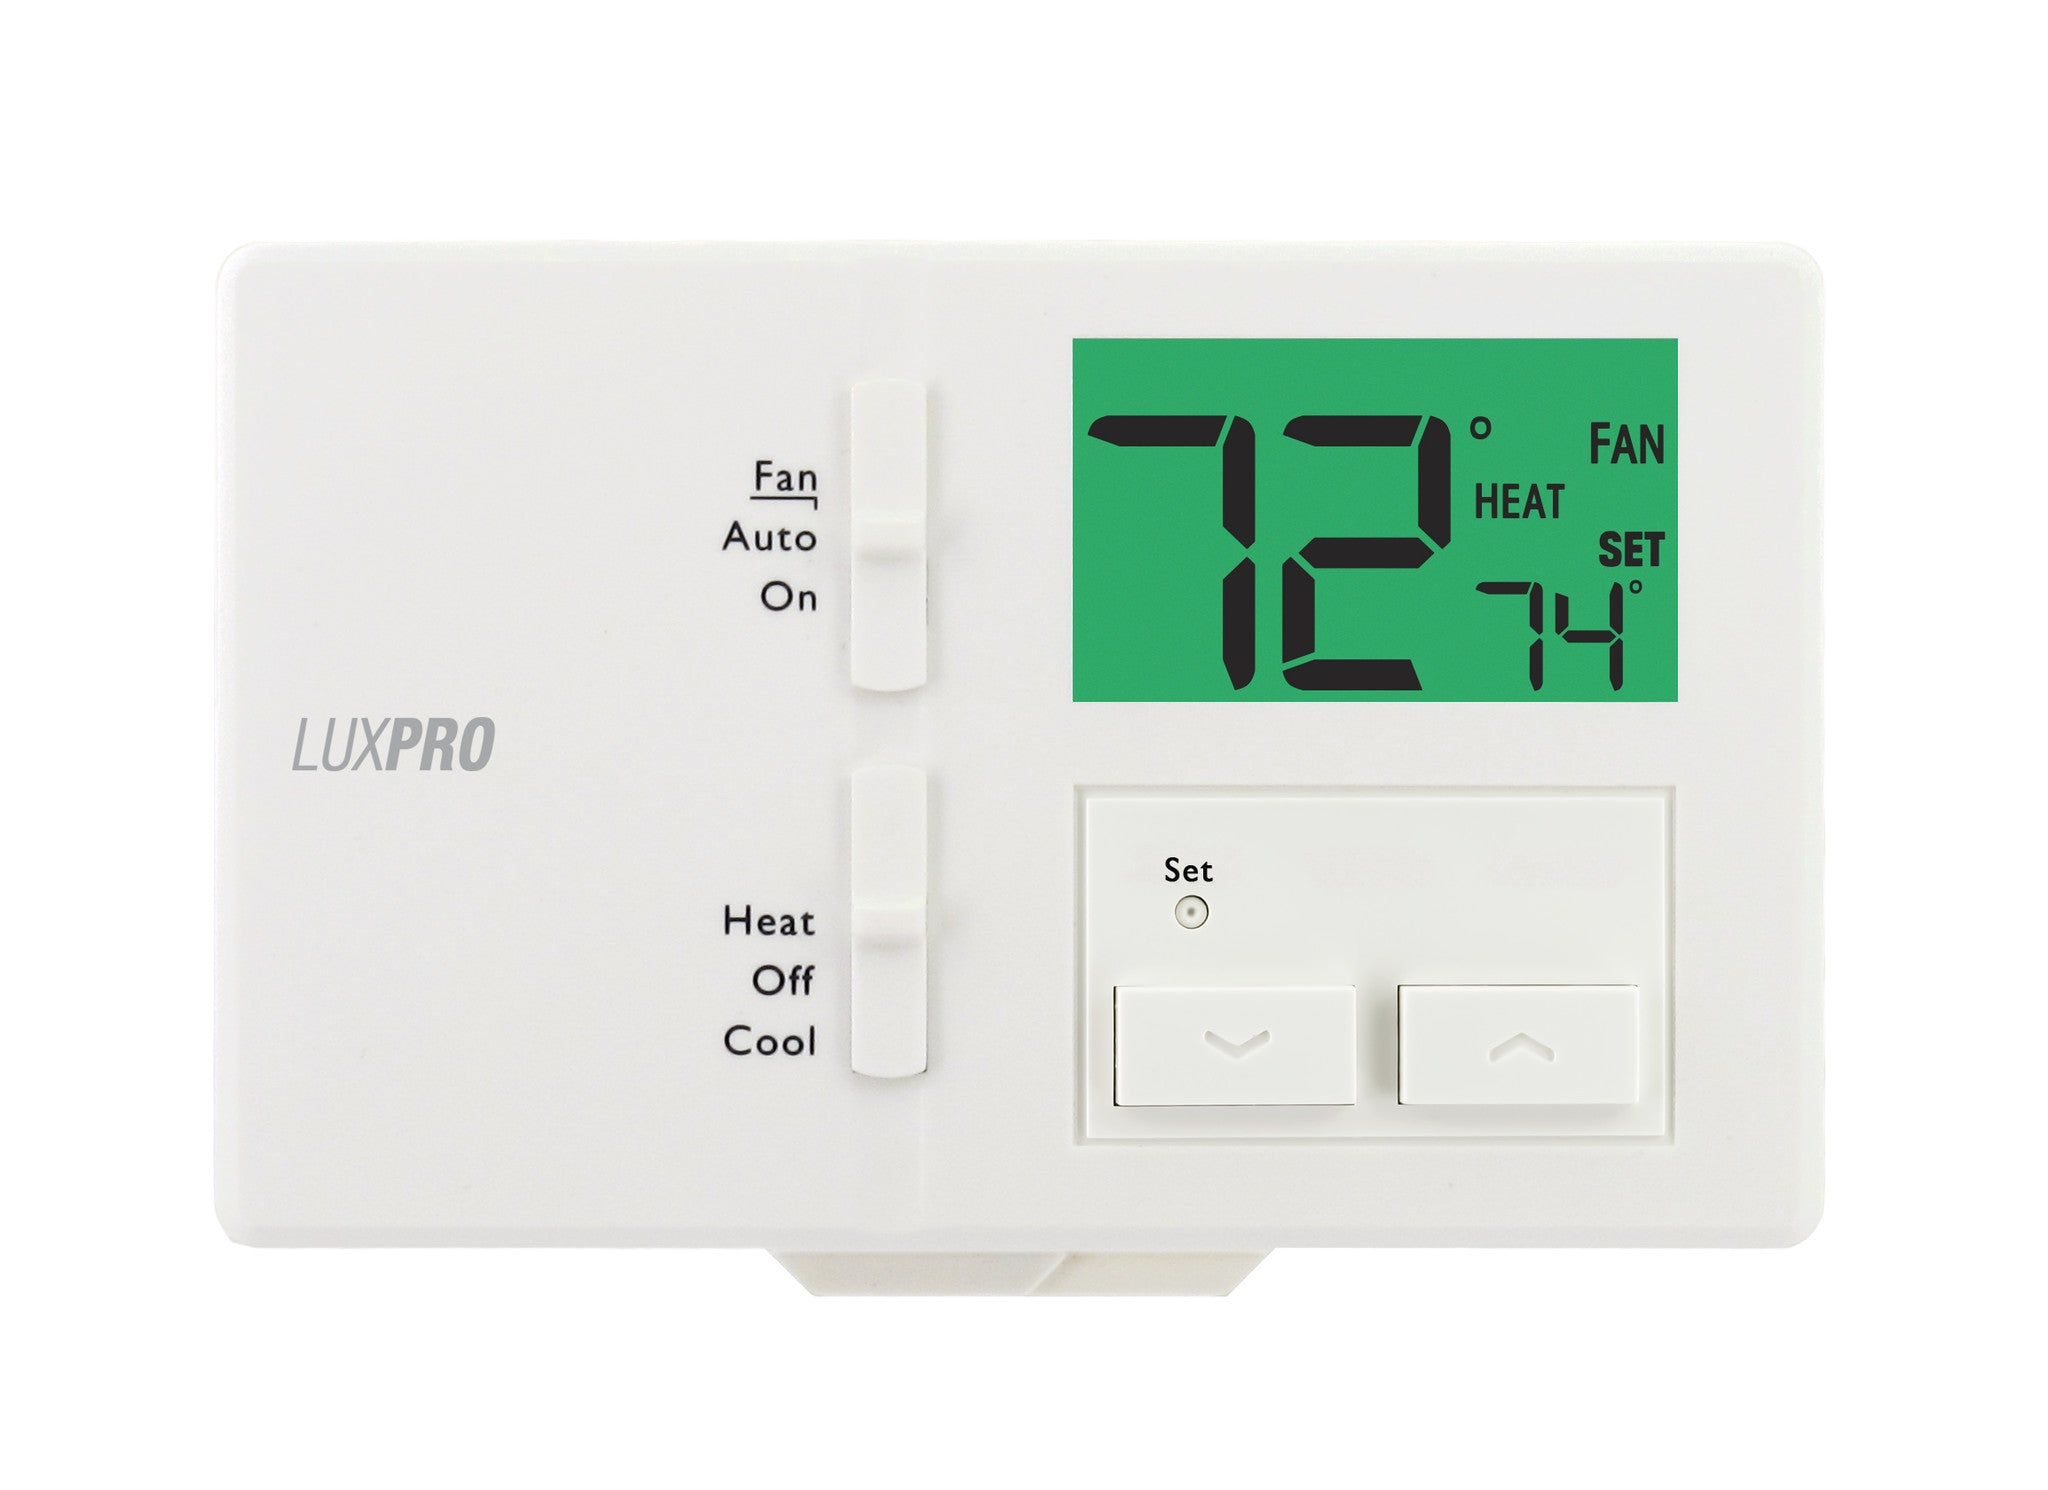 Luxpro Thermostat Diagram Electrical Wiring Diagrams 2wire Programmable Example 3m P111 Non